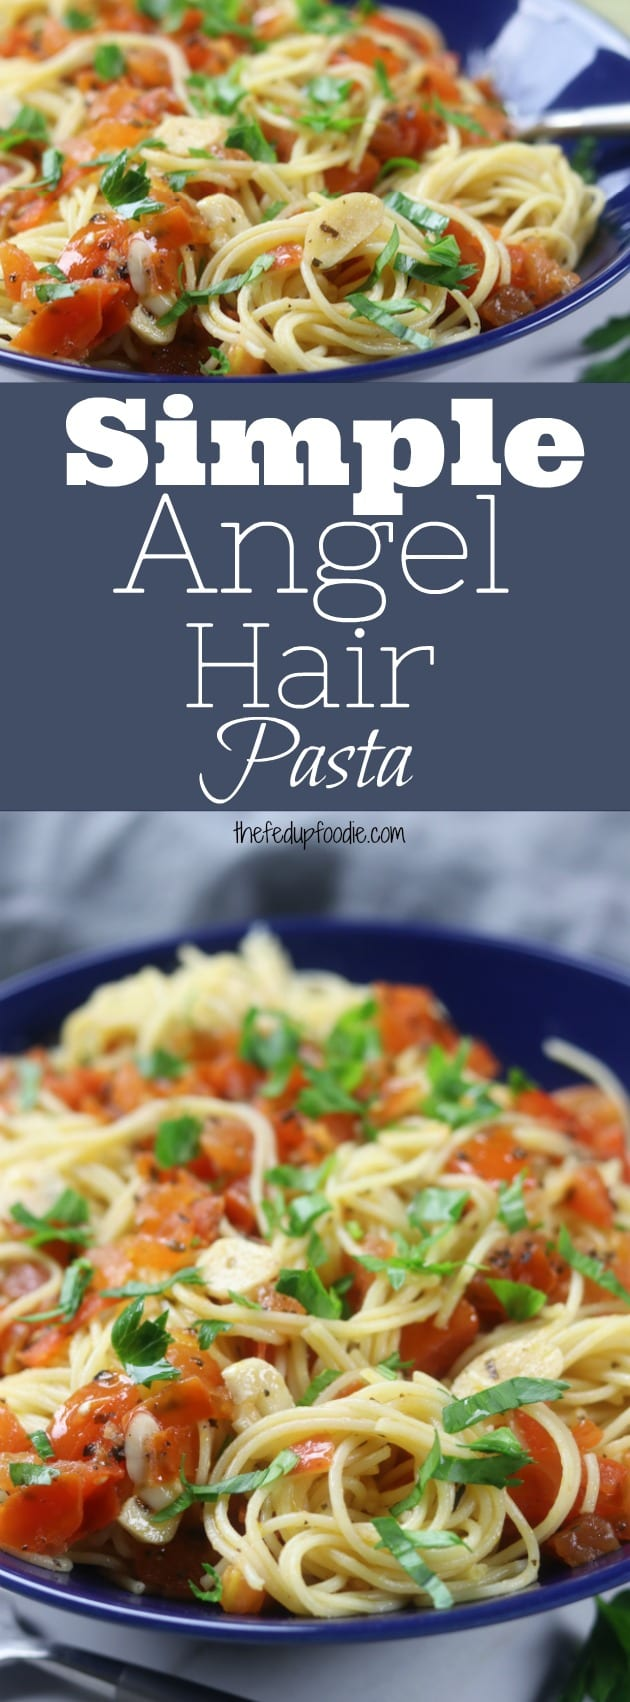 Simple Angel Hair Pasta recipe has only 5 ingredients but feels like an Italian feast. Add your favorite protein or leave as is for a favorite vegetarian meal. Perfect for a quick and easy dinner that comes together in under 30 minutes. #easydinner #quickdinner #healthydinner https://www.thefedupfoodie.com